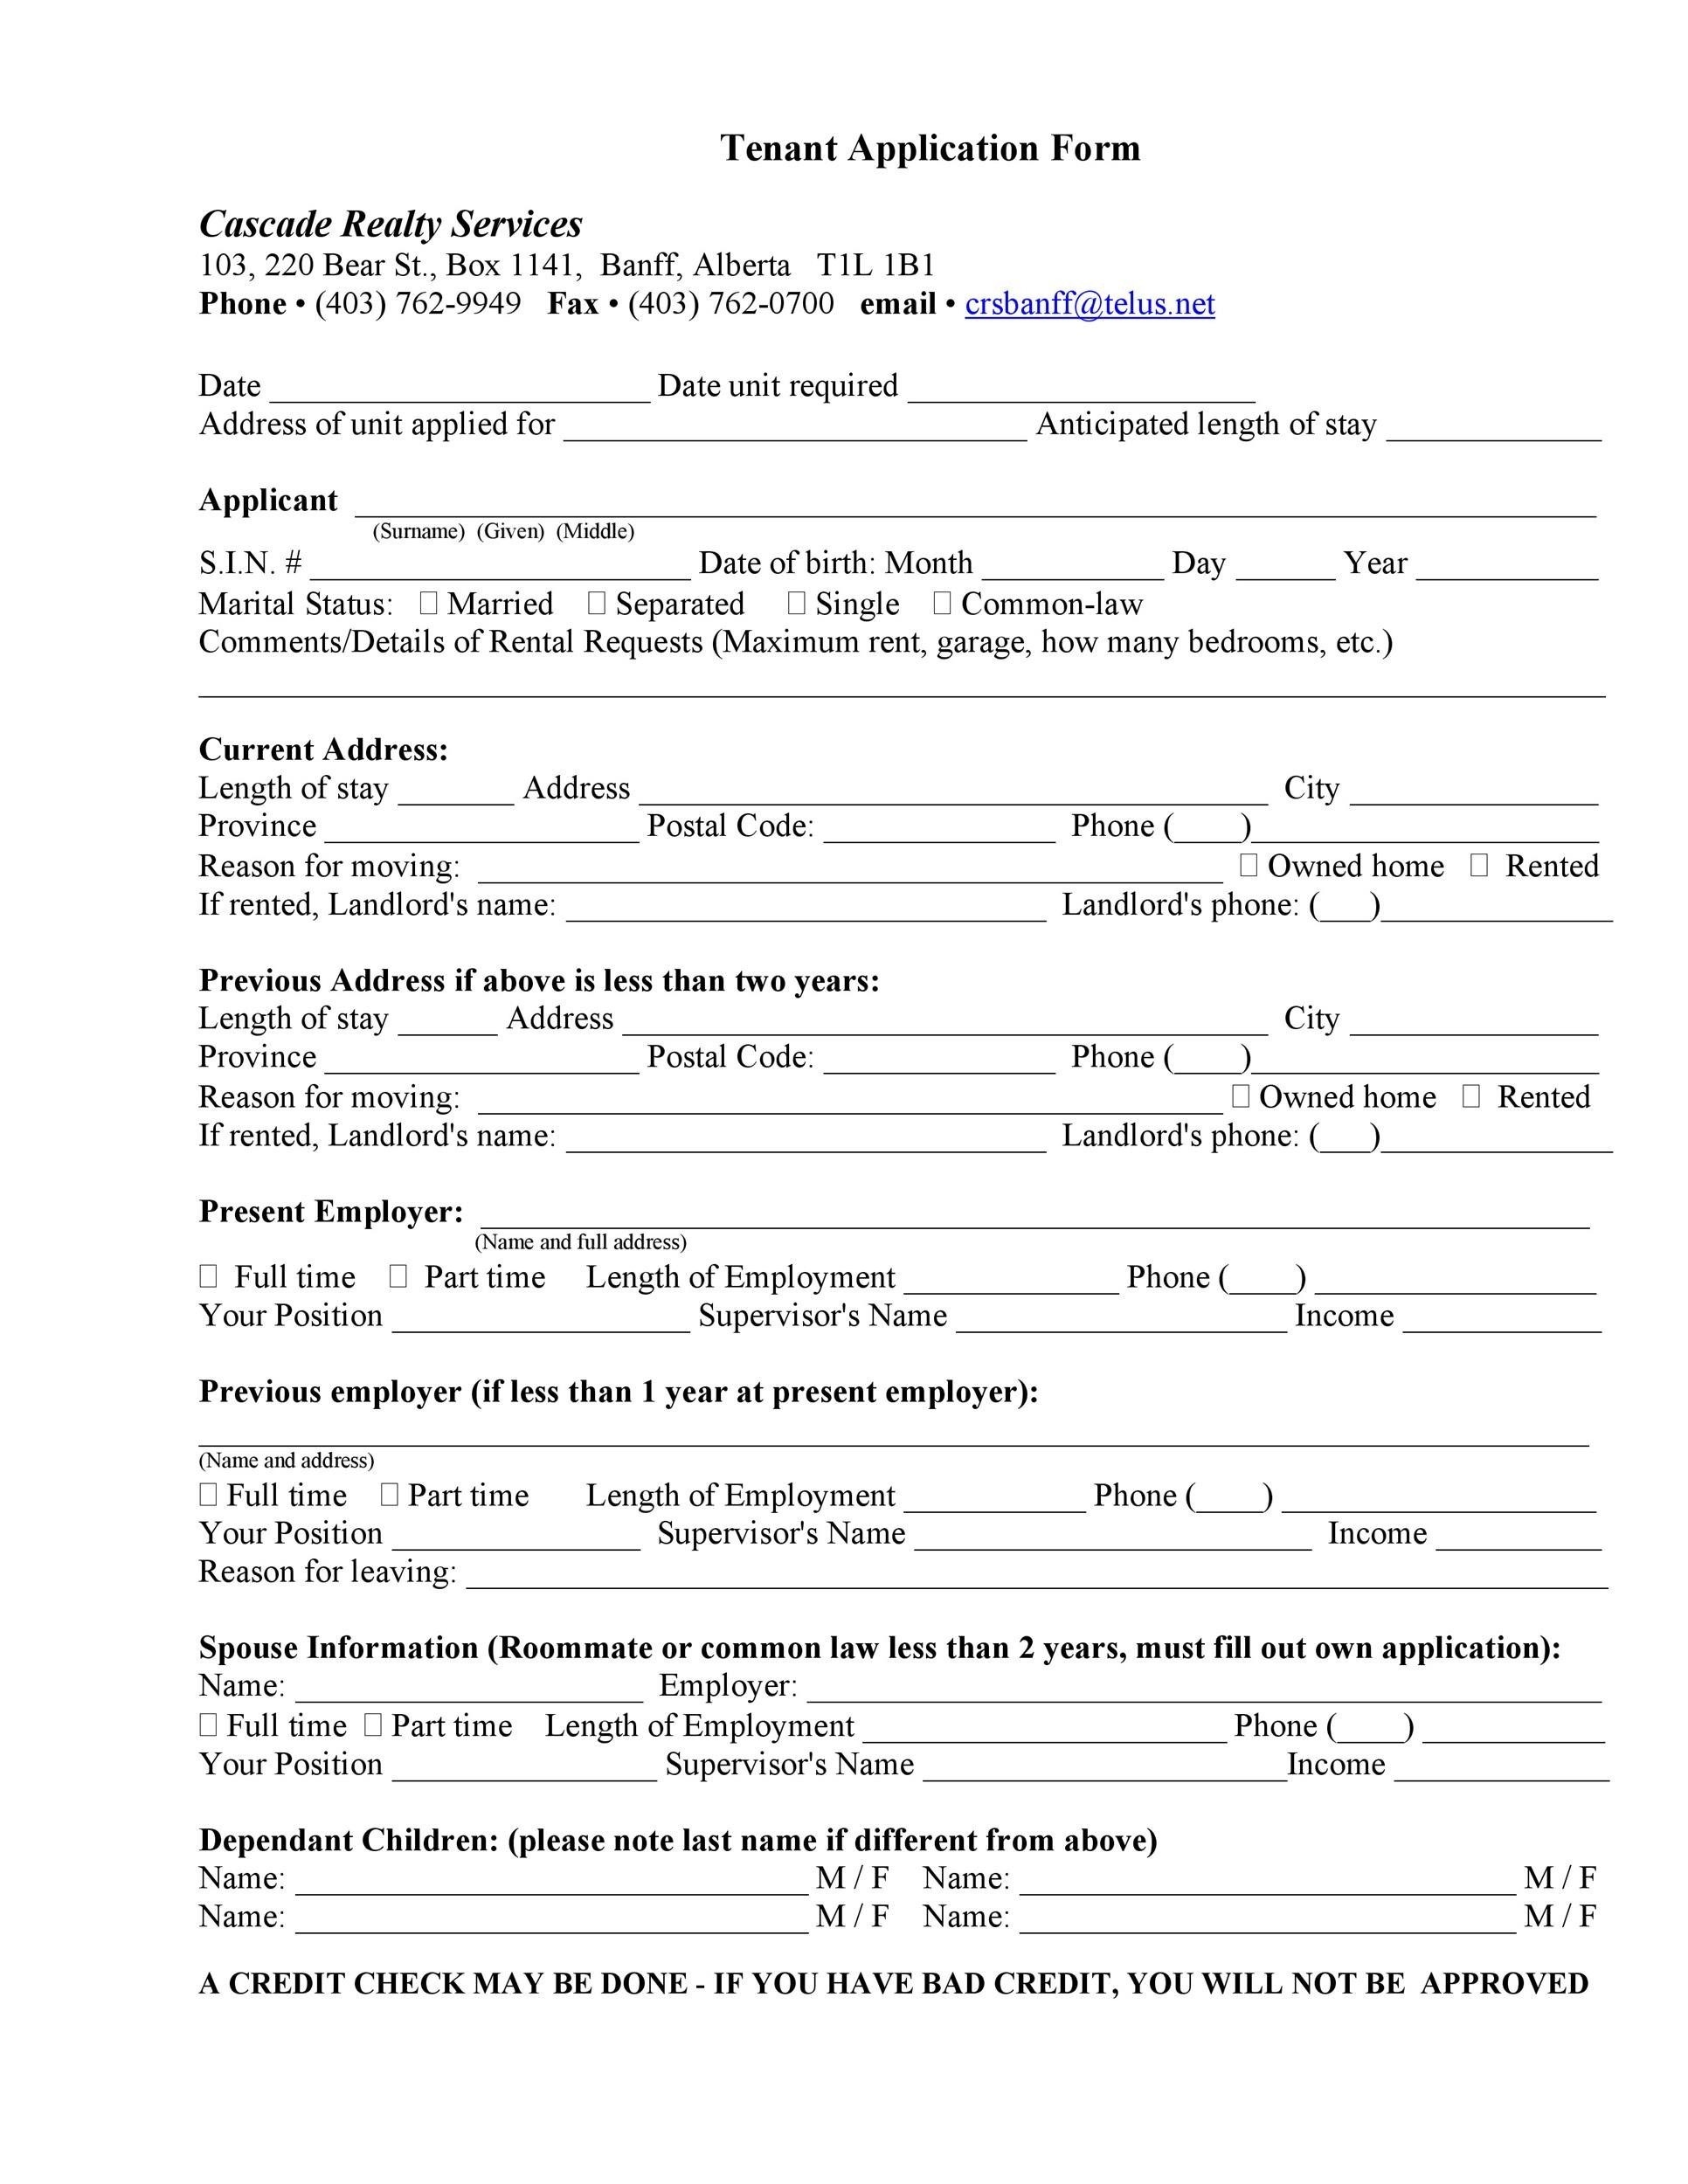 tenant application form samples